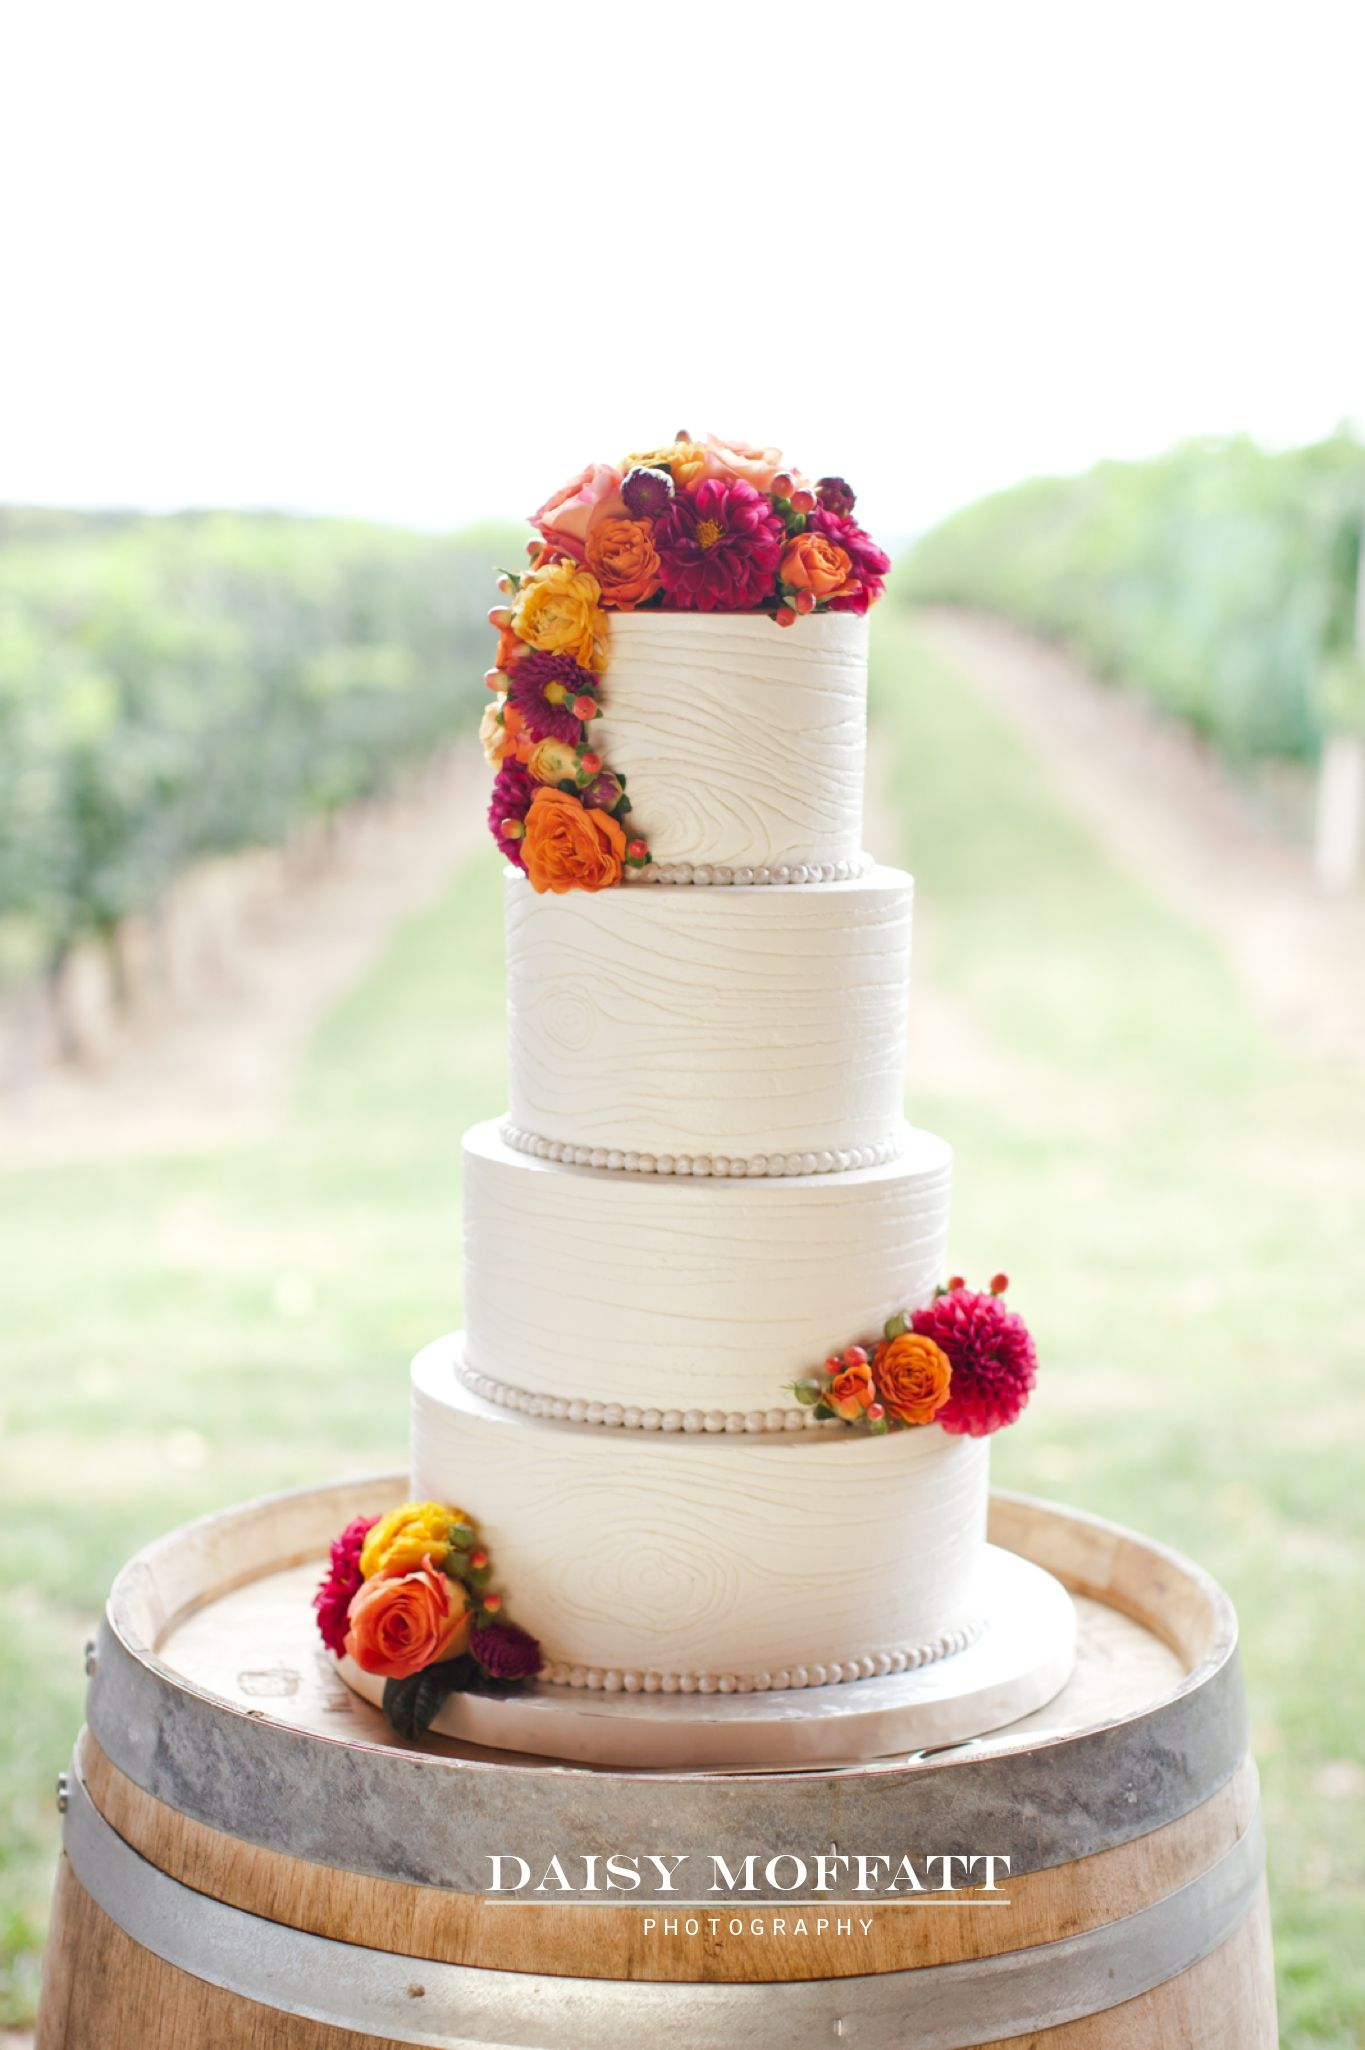 Vineyard wedding cake with wood grain frosting by @Jennifferwhite . Coral and pink. Very yummy! #weddingcake #vineyard #wedding www.daisymphotography.com